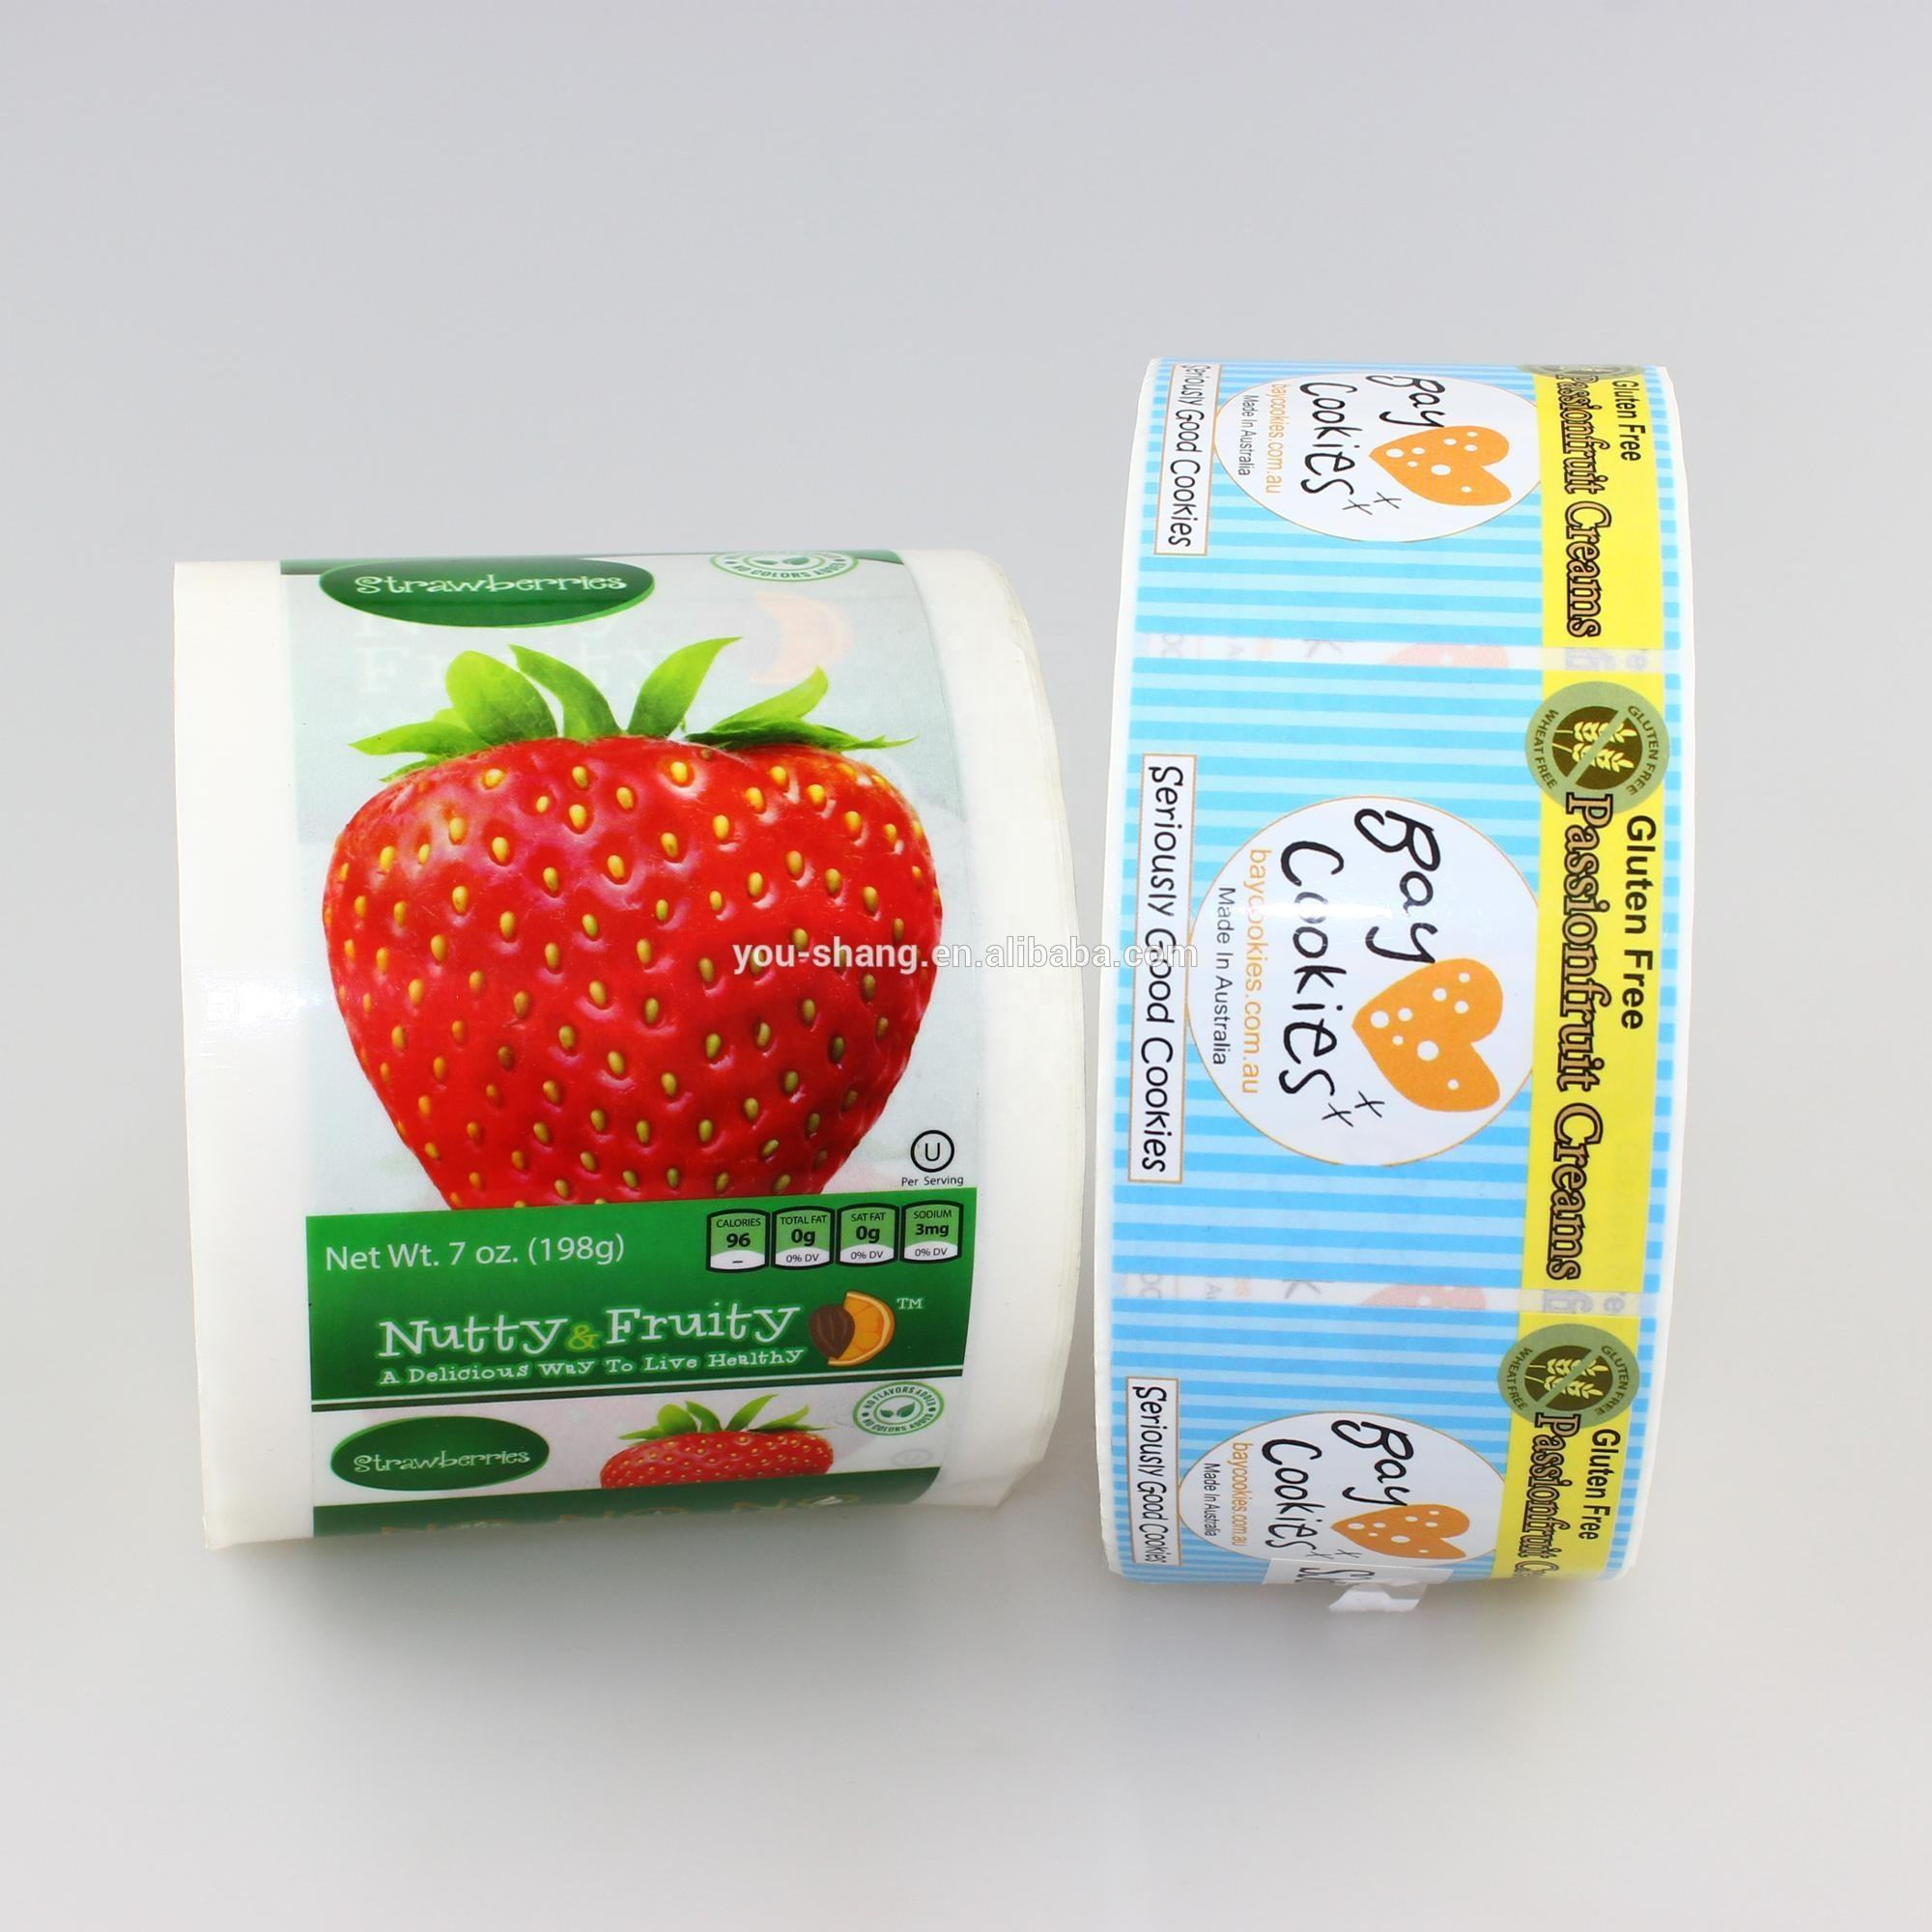 Custom adhesive waterproof and frozen safe food packaging label